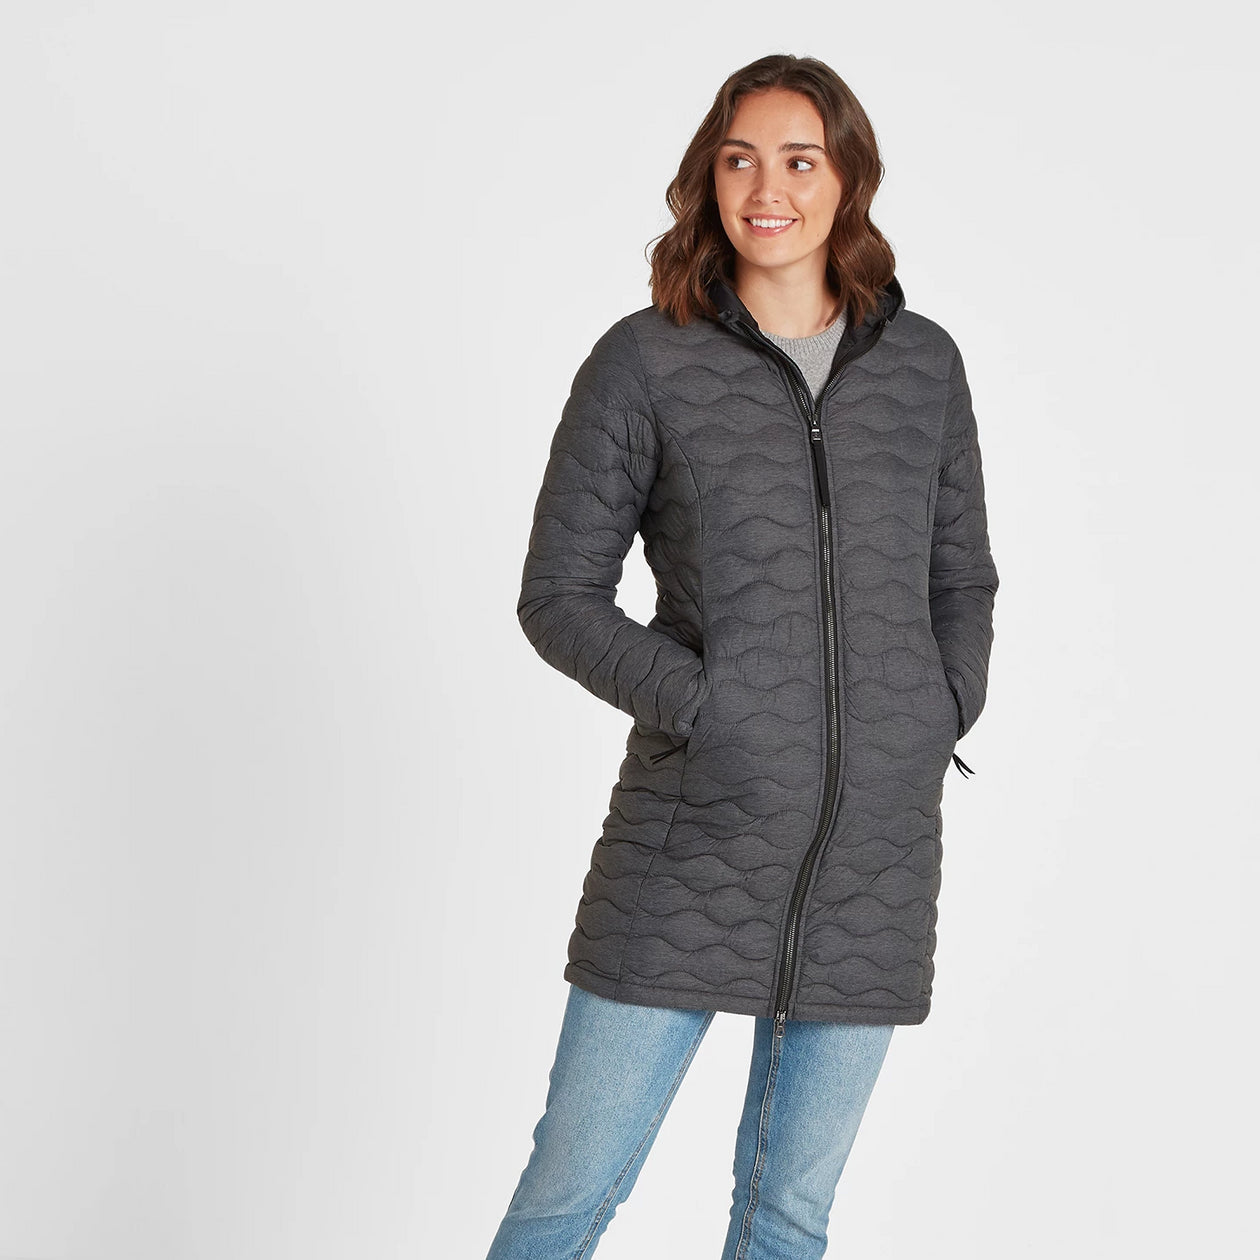 Eastby Womens Thermal Jacket - Grey Marl image 4